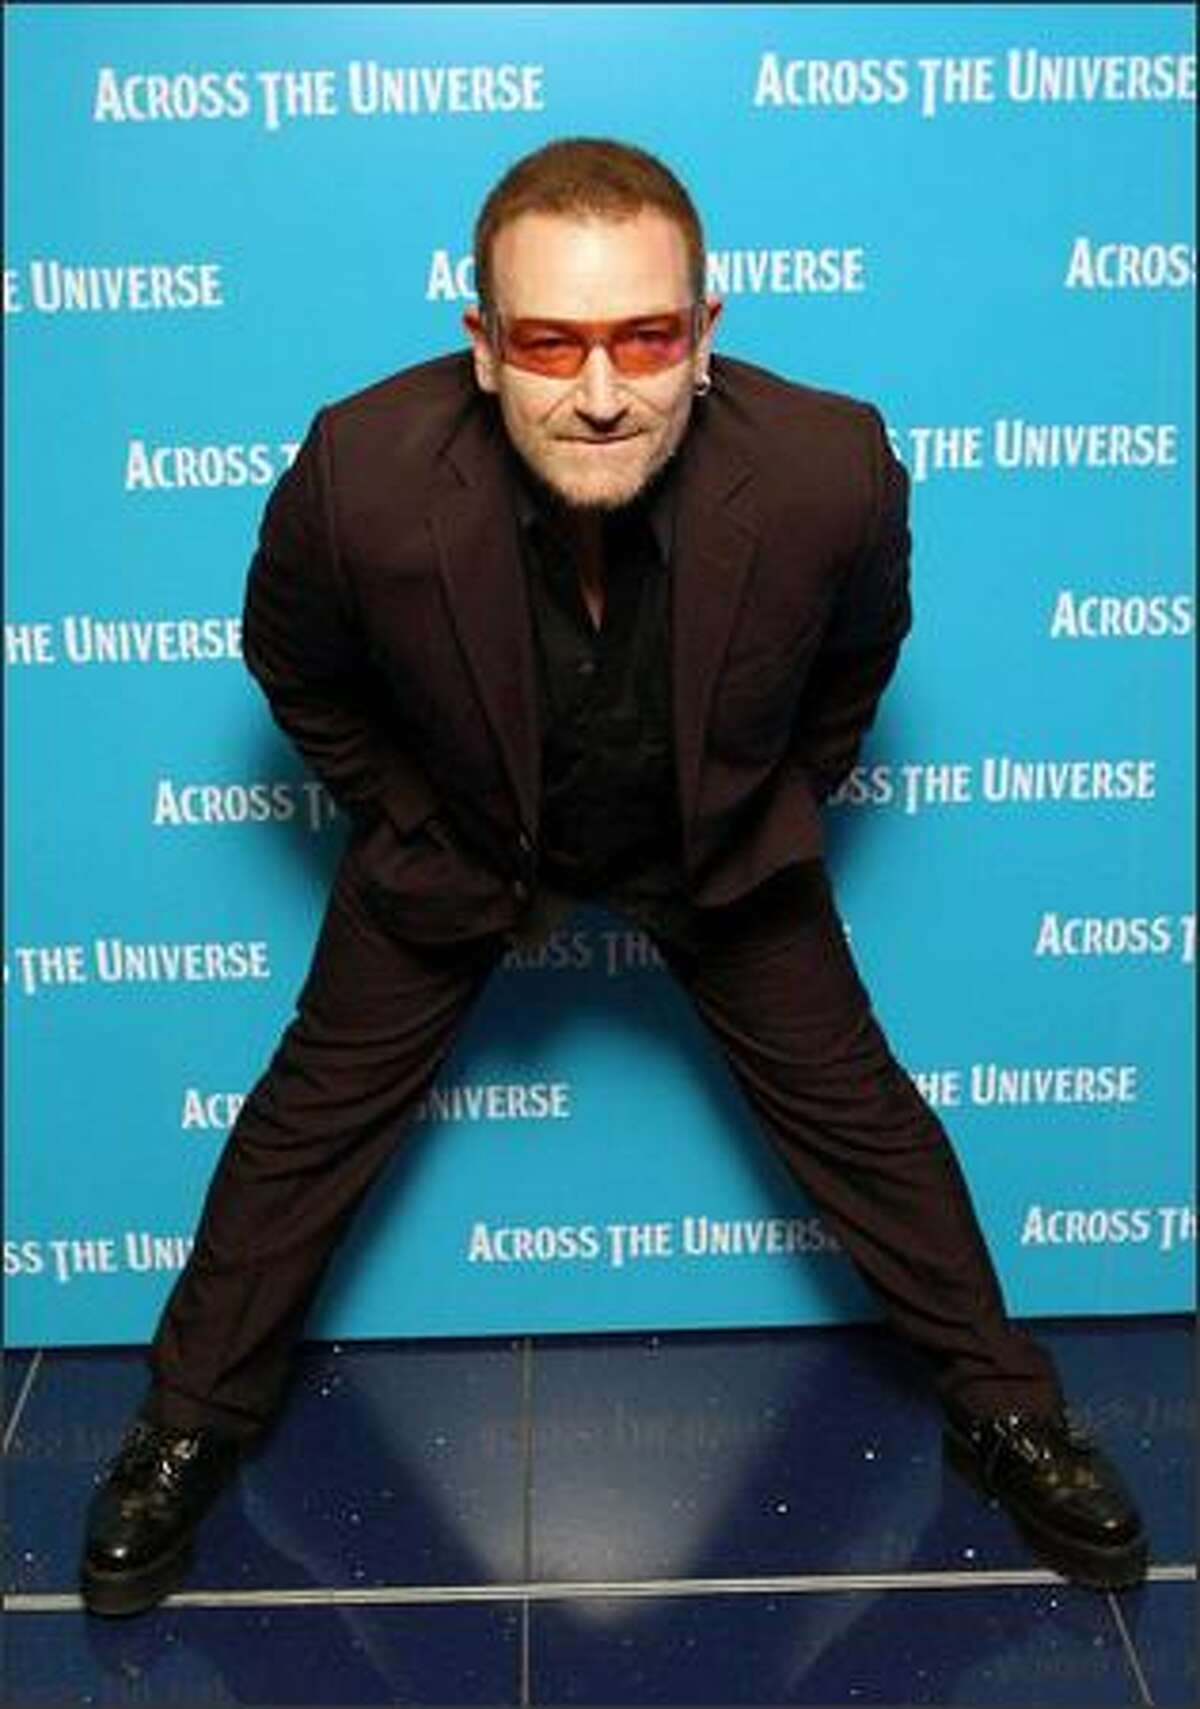 U2 through the years U2 singer Bono arrives for the premiere of the film Across The Universe at the Apollo cinema, in cental London on Wednesday Sept. 26 2007. (Associated Press)